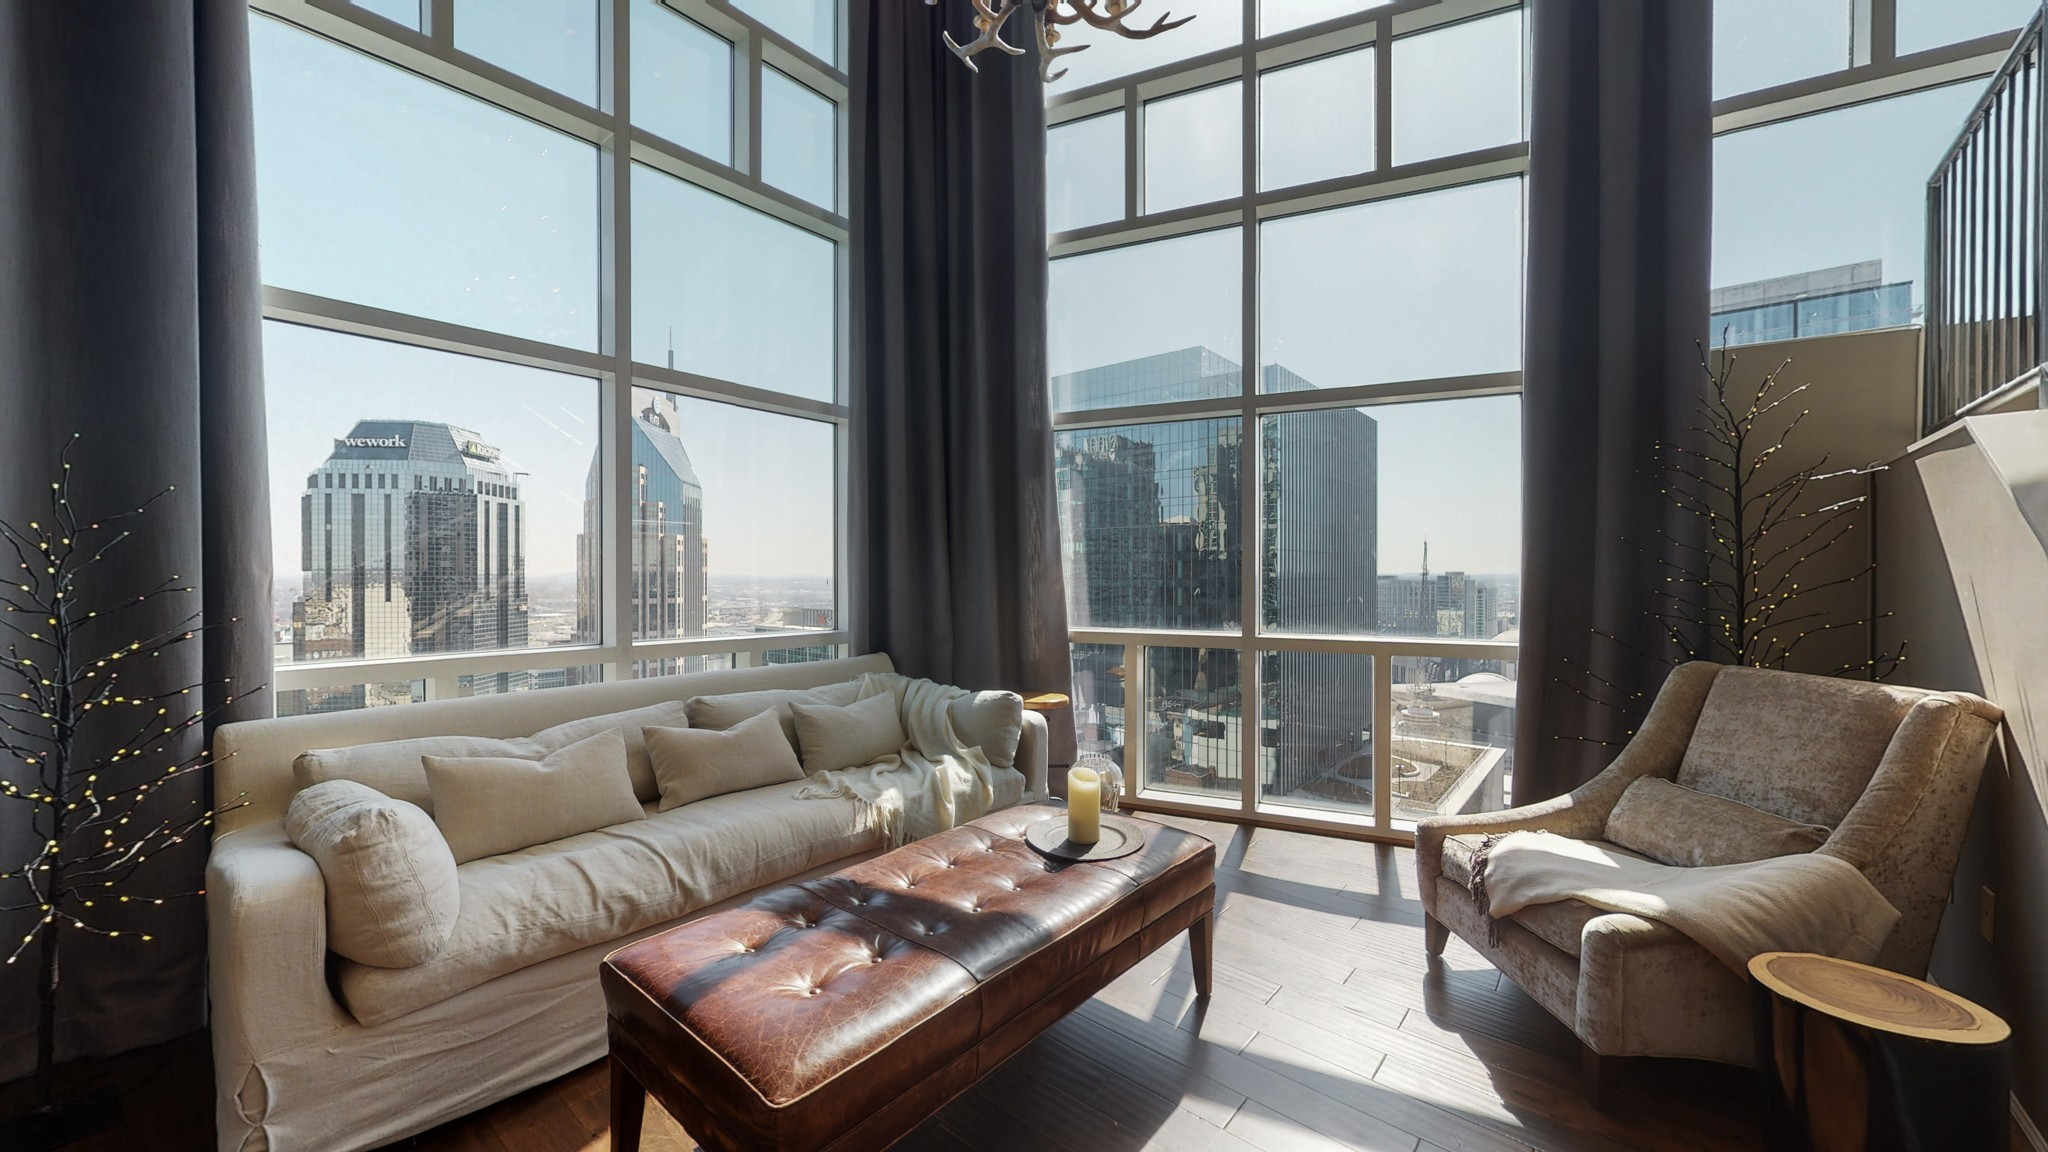 Beautiful 2 story penthouse in the heart of Downtown overlooking Bridgestone Arena. This 3 bedroom, 2 1/2 bath beauty boasts floor to ceiling windows with breathtaking views of the Nashville skyline. First floor media room is optional 4th bedroom with large walk in closet. Walk just blocks to Broadway and the retail of the newly developed 5th and Broad, including the new Apple store. Amenities include Zen courtyard with fire pit, game and billiards hall, state of the art fitness center and more.